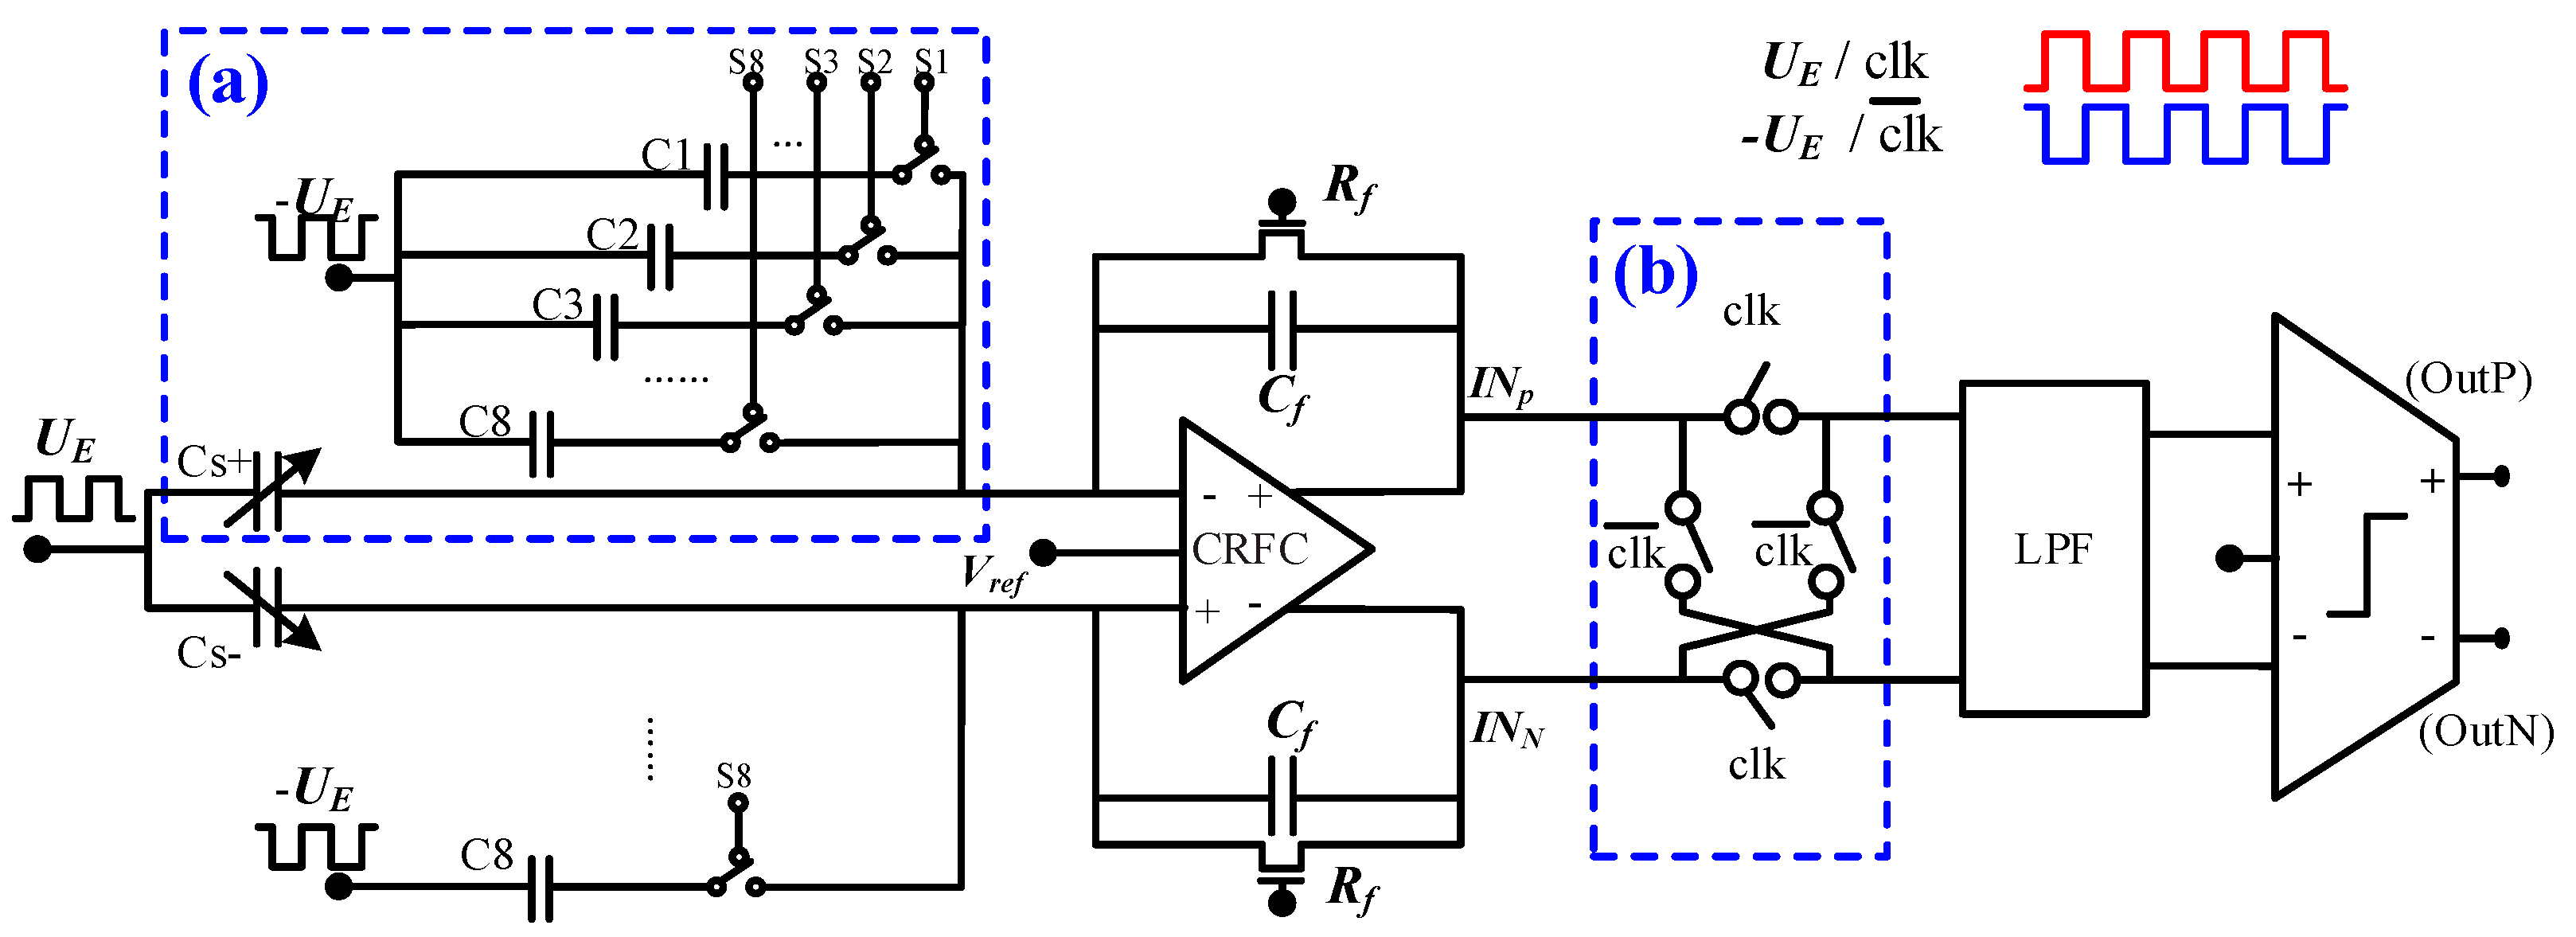 Sensors | Free Full-Text | An Analog Interface Circuit for